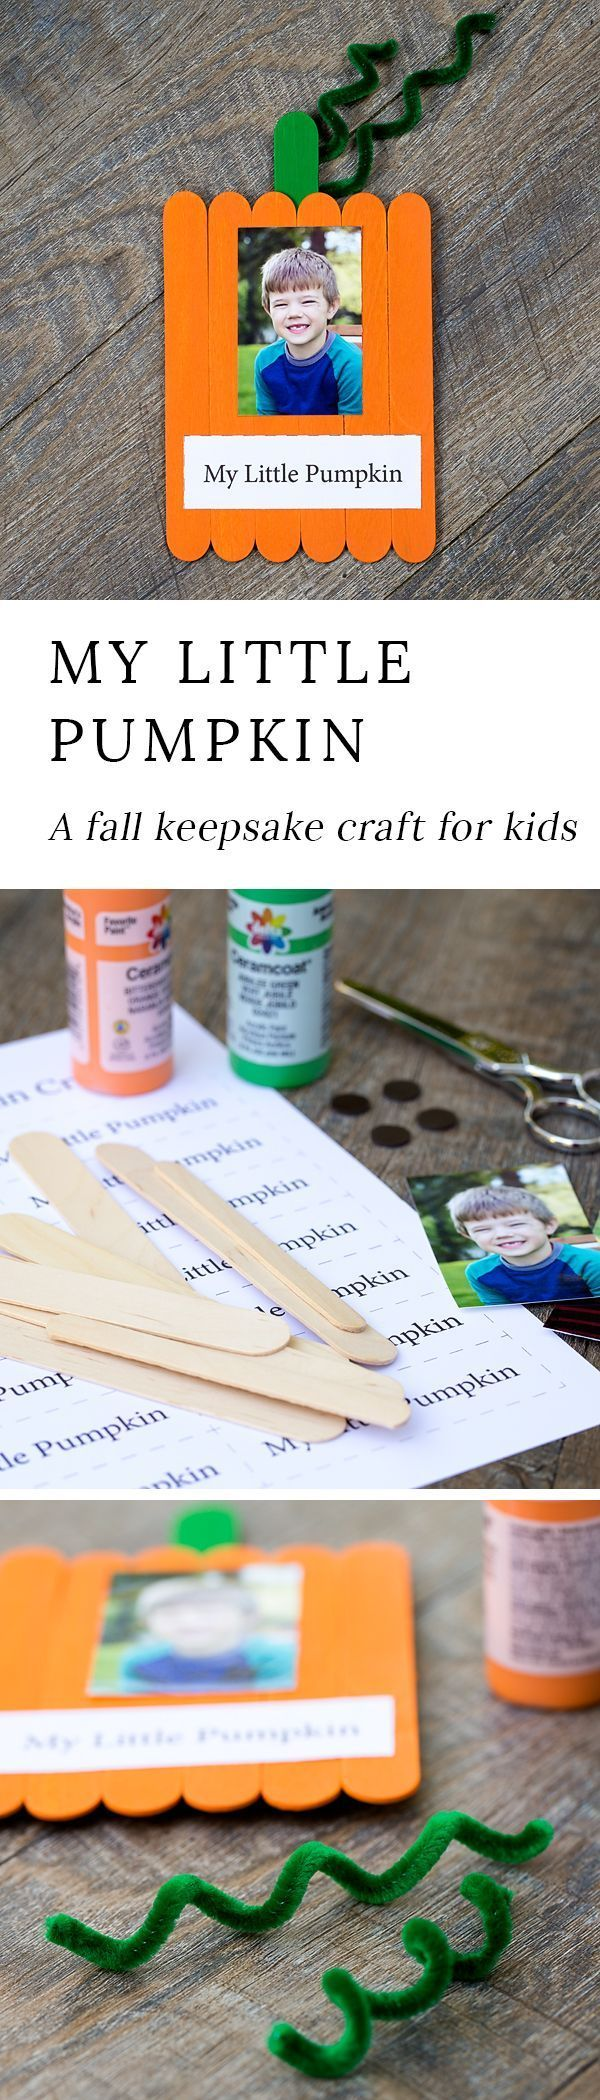 Just in time for fall, learn how to make an adorable My Little Pumpkin Keepsake Craft with craft sticks, paint, and glue.#fallcrafts via @https://www.pinterest.com/fireflymudpie/